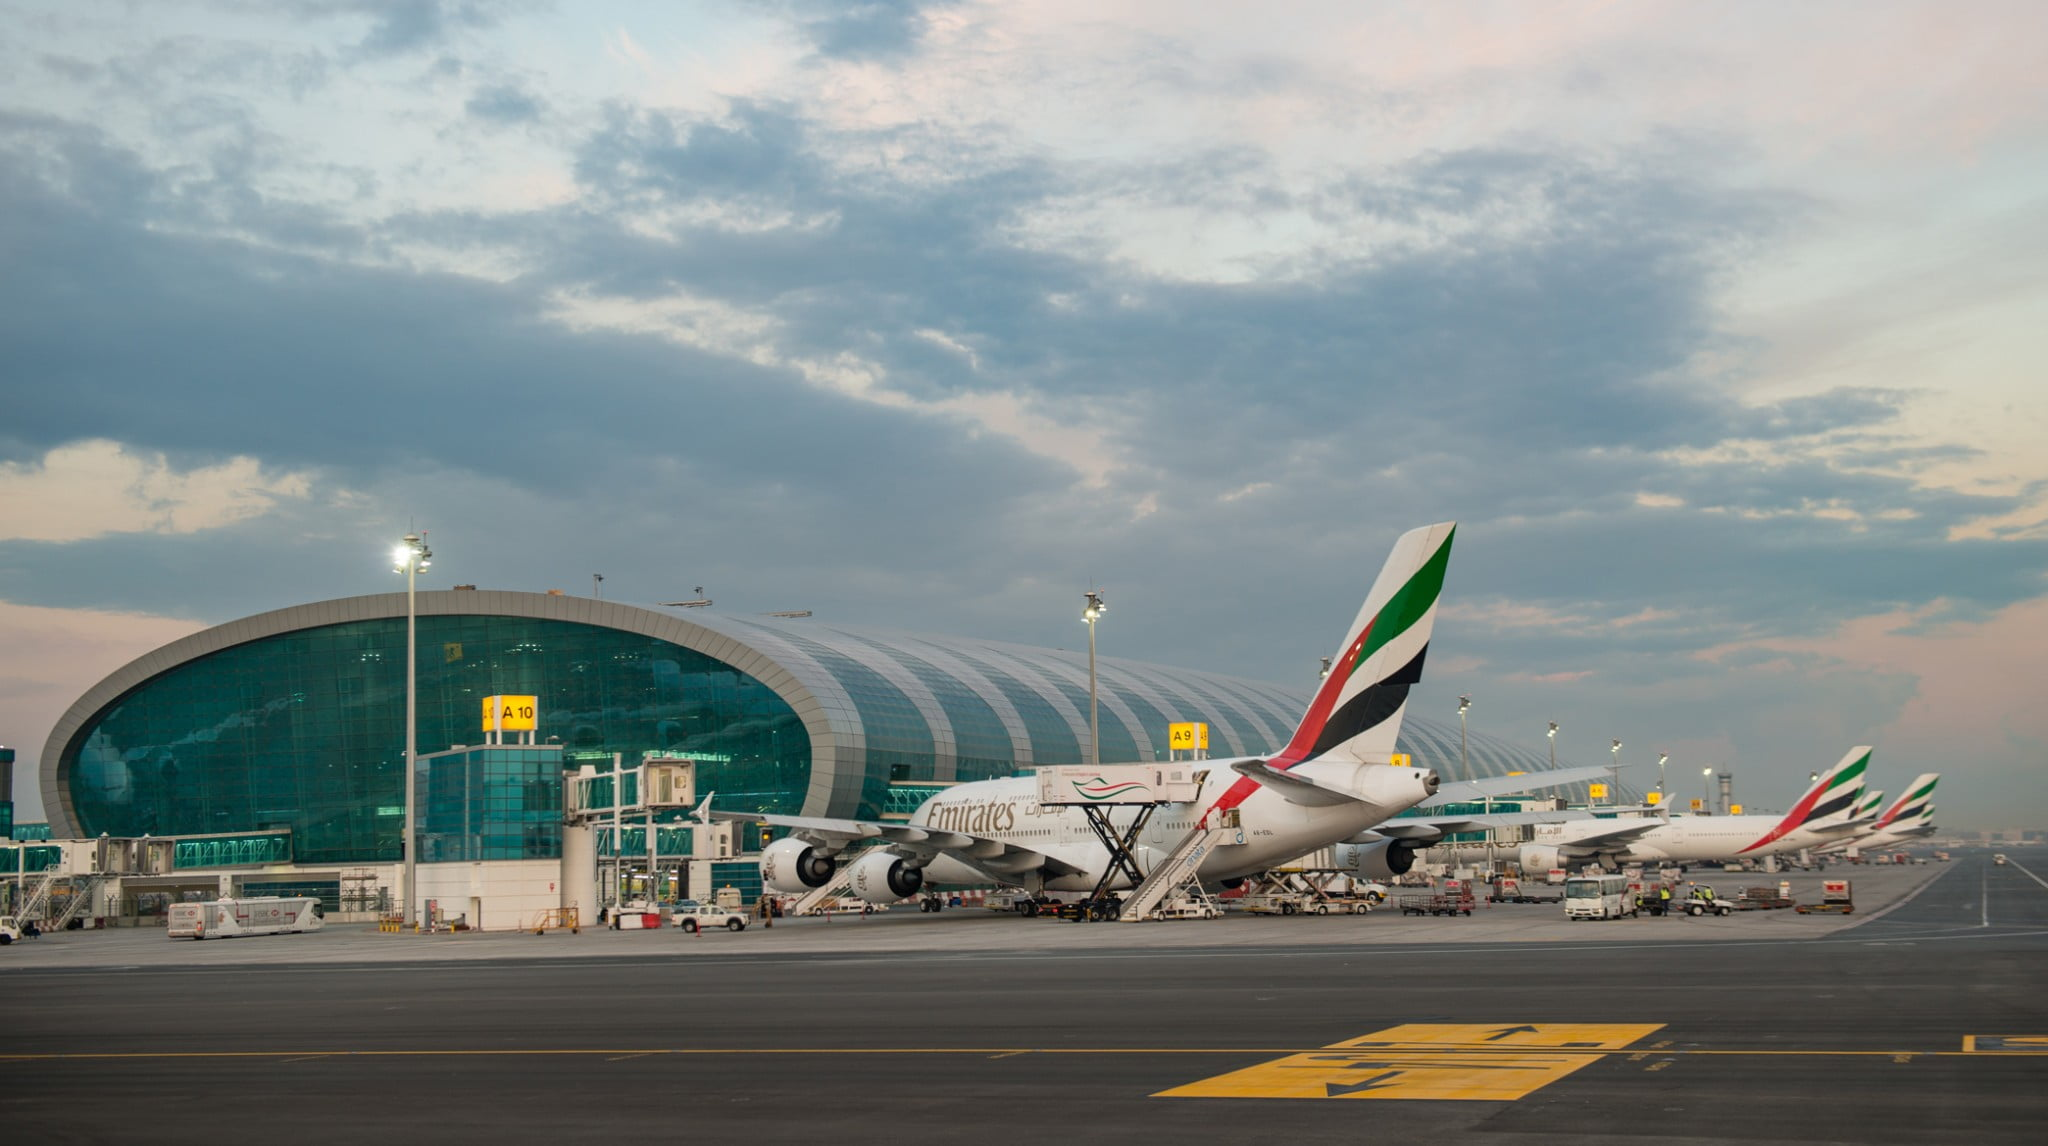 An Airside view of Dubai International Airport